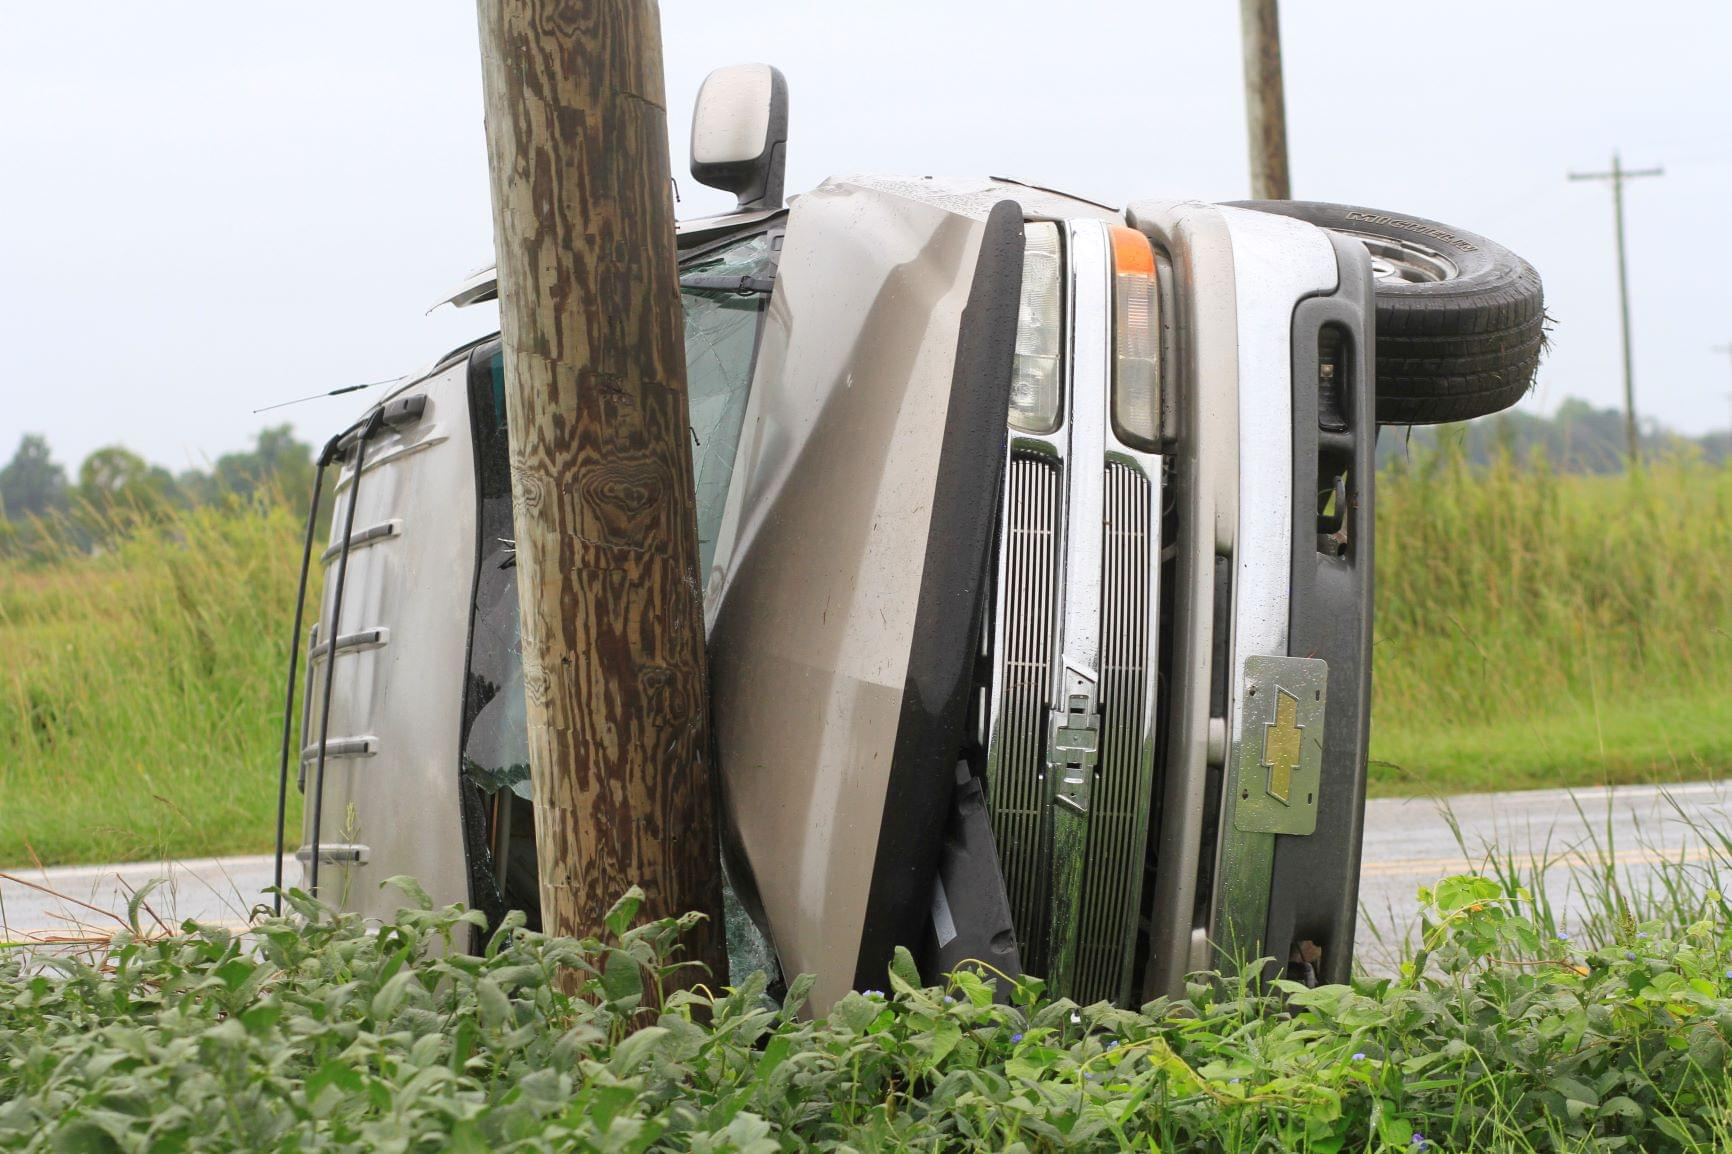 Vehicles Collide Near Mount Olive (PHOTO GALLERY)